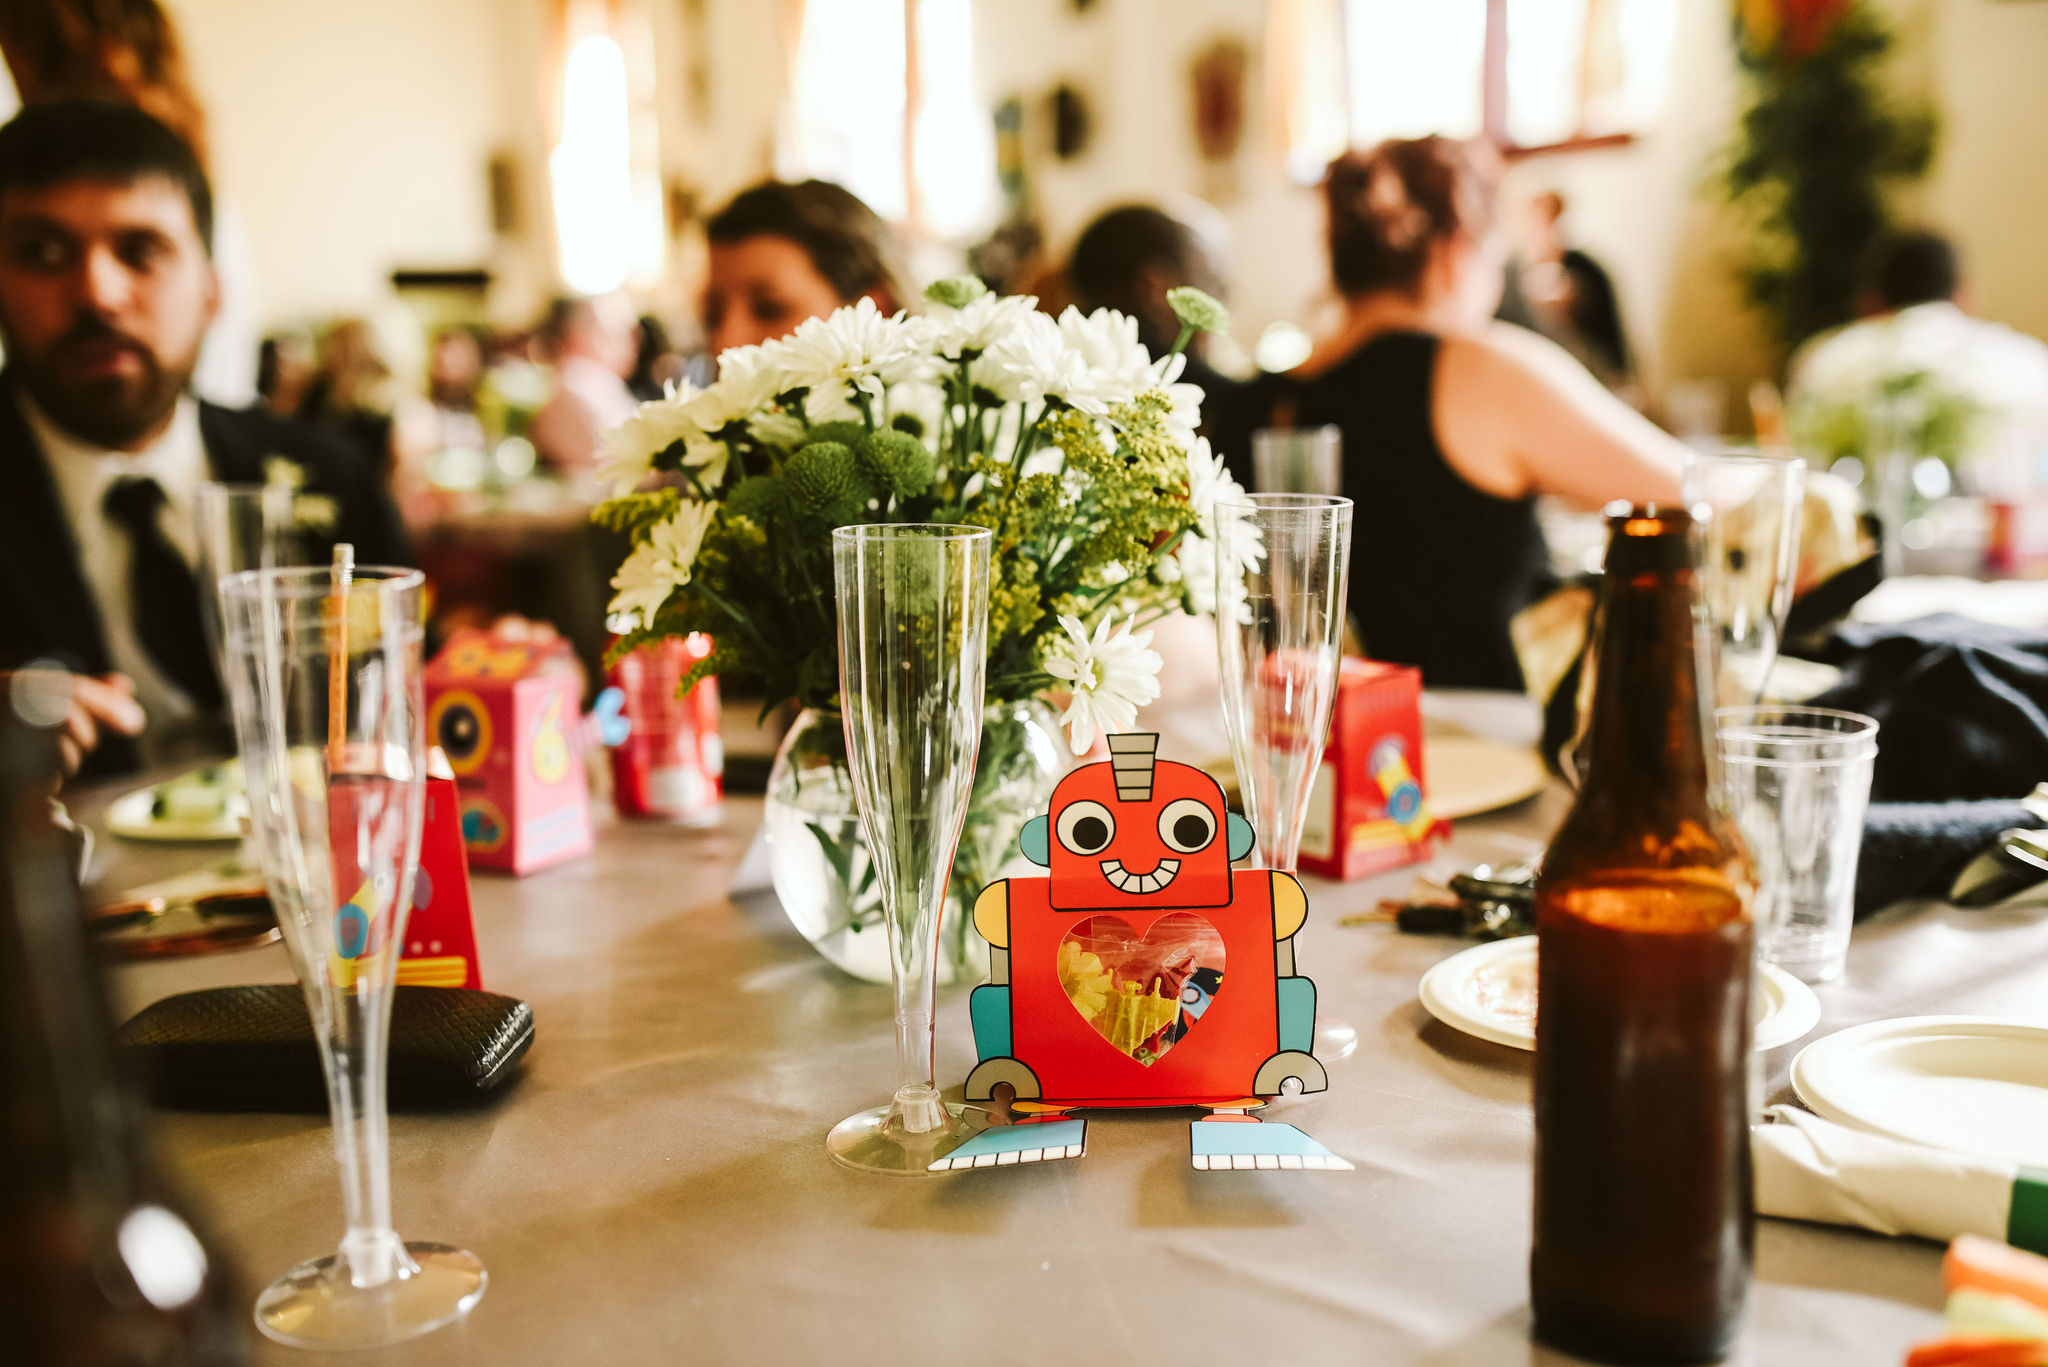 Baltimore, Lithuanian Dance Hall, Maryland Wedding Photographer, Vintage, Classic, 50s Style, Robot Wedding Favors, Fun Quirky Details, Wedding Reception